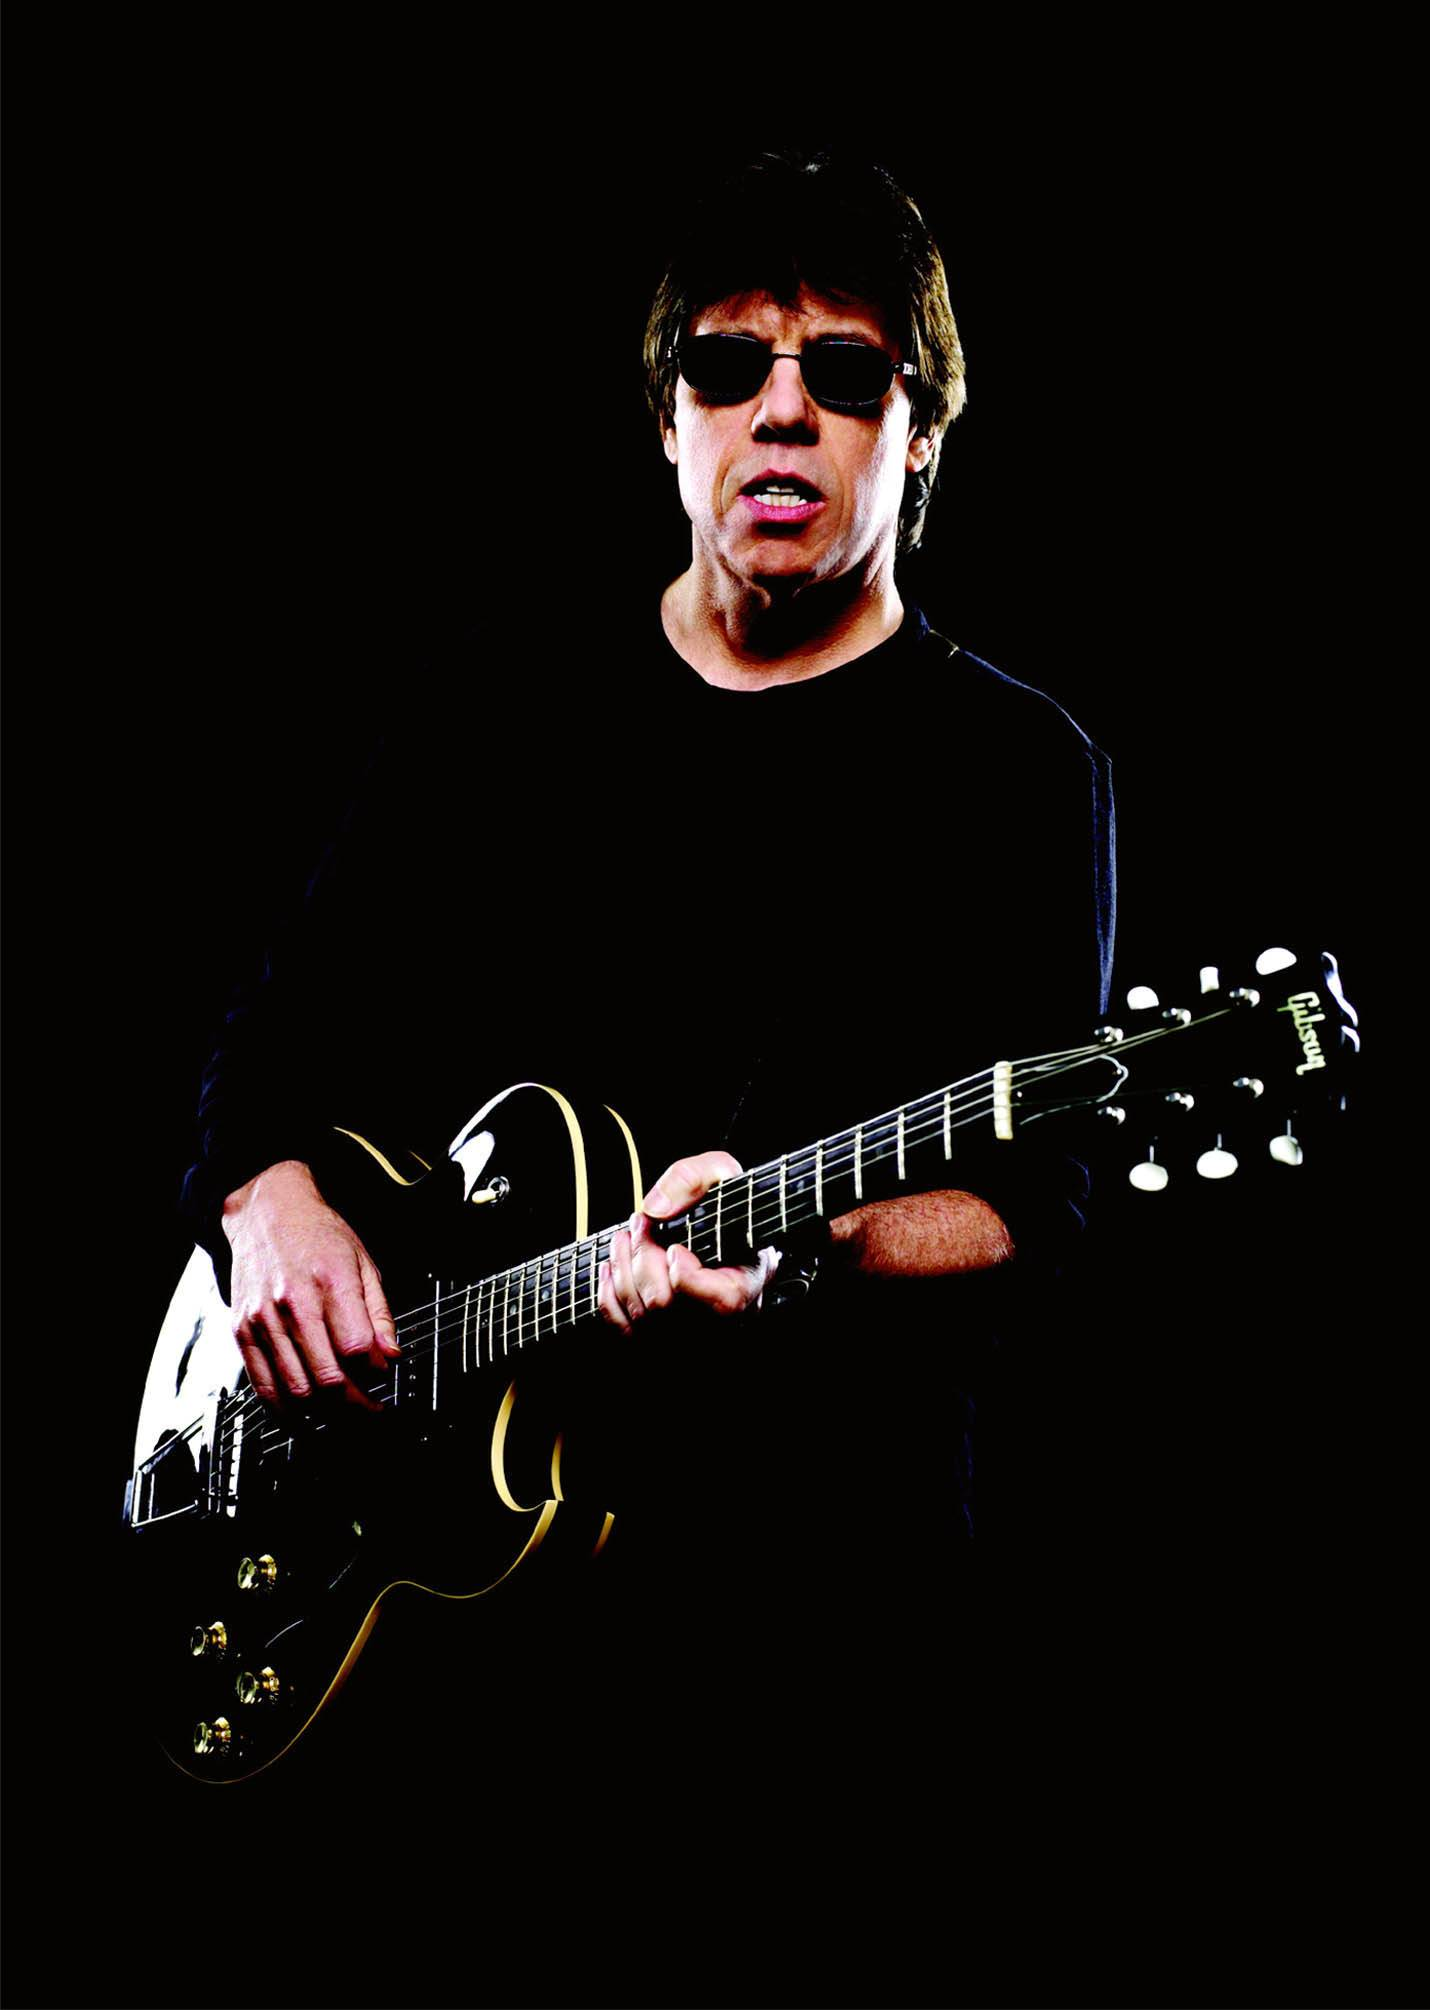 6 questions with George Thorogood